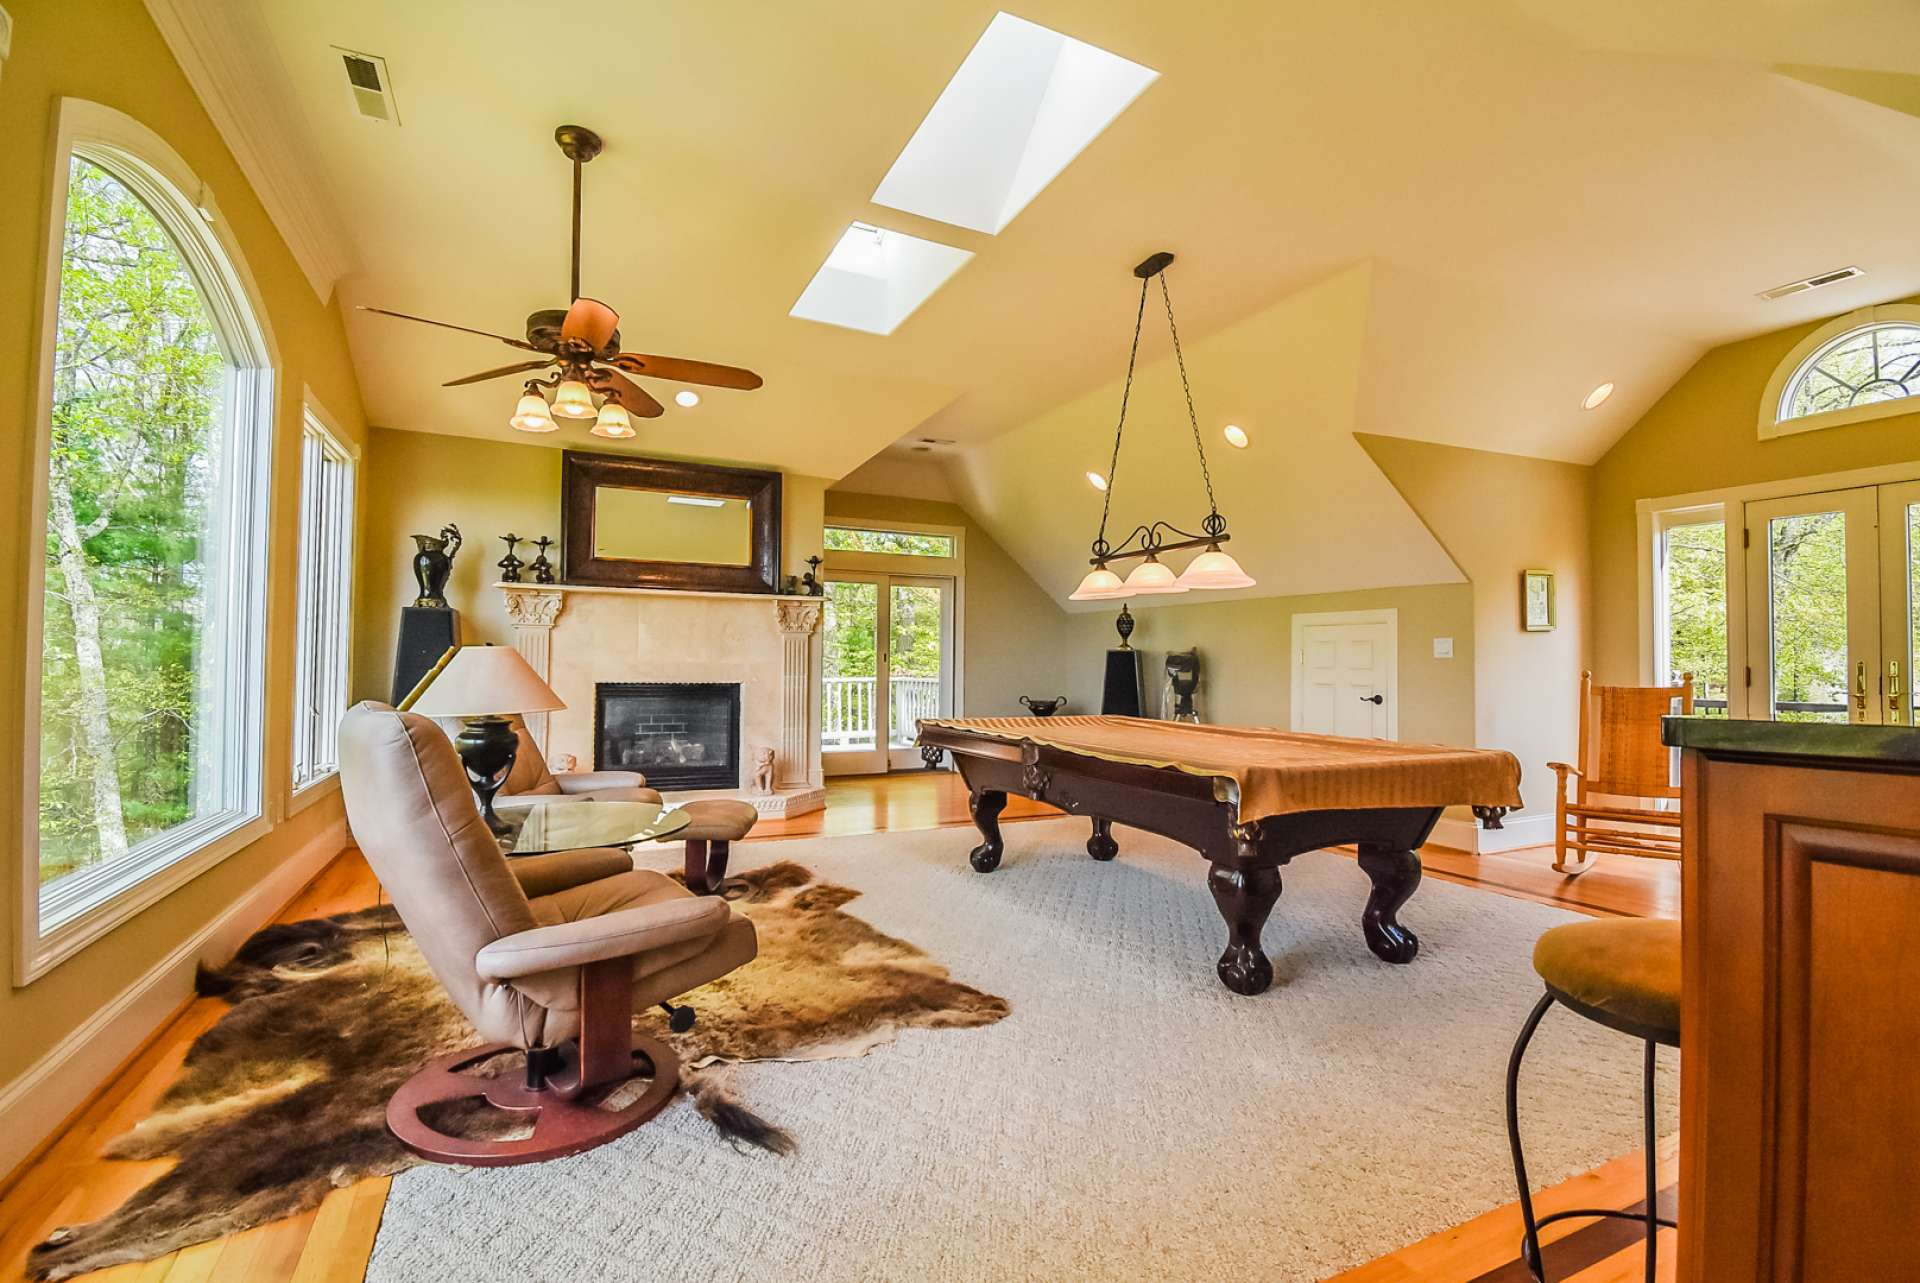 The second level features a large game room with the gas log fireplace, skylights, private deck, and full bath.